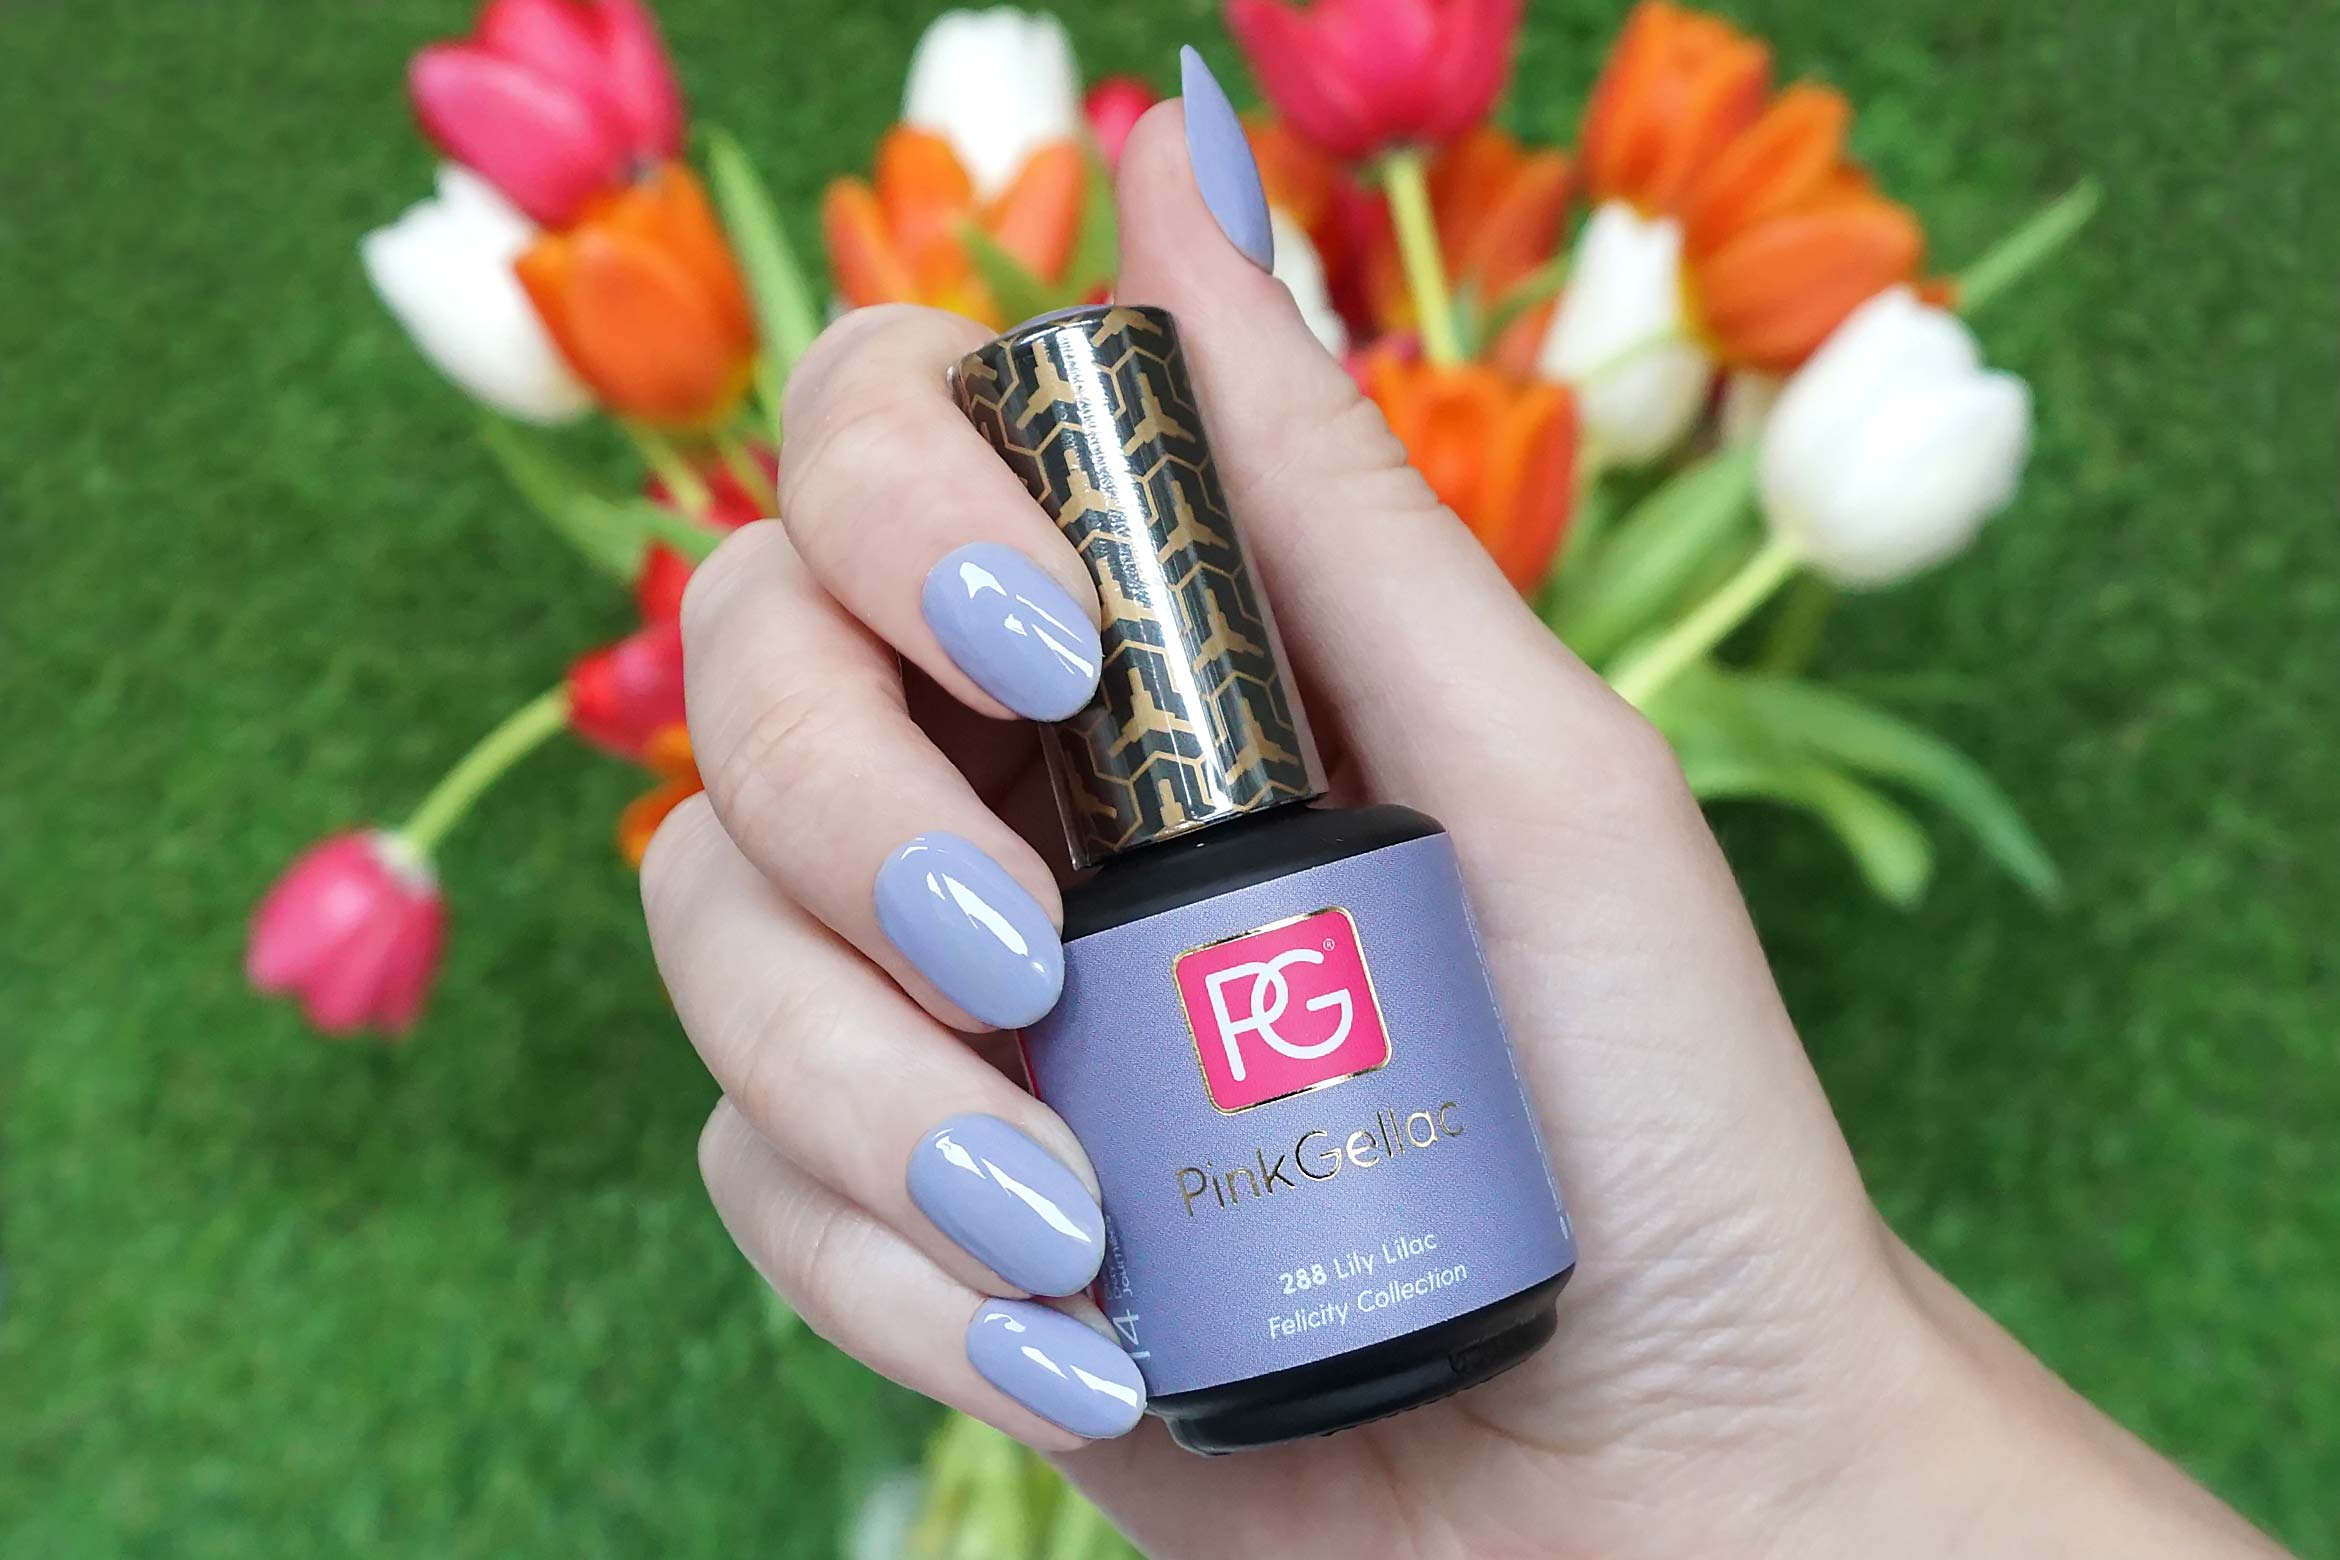 pink gellac 288 lily lilac swatch